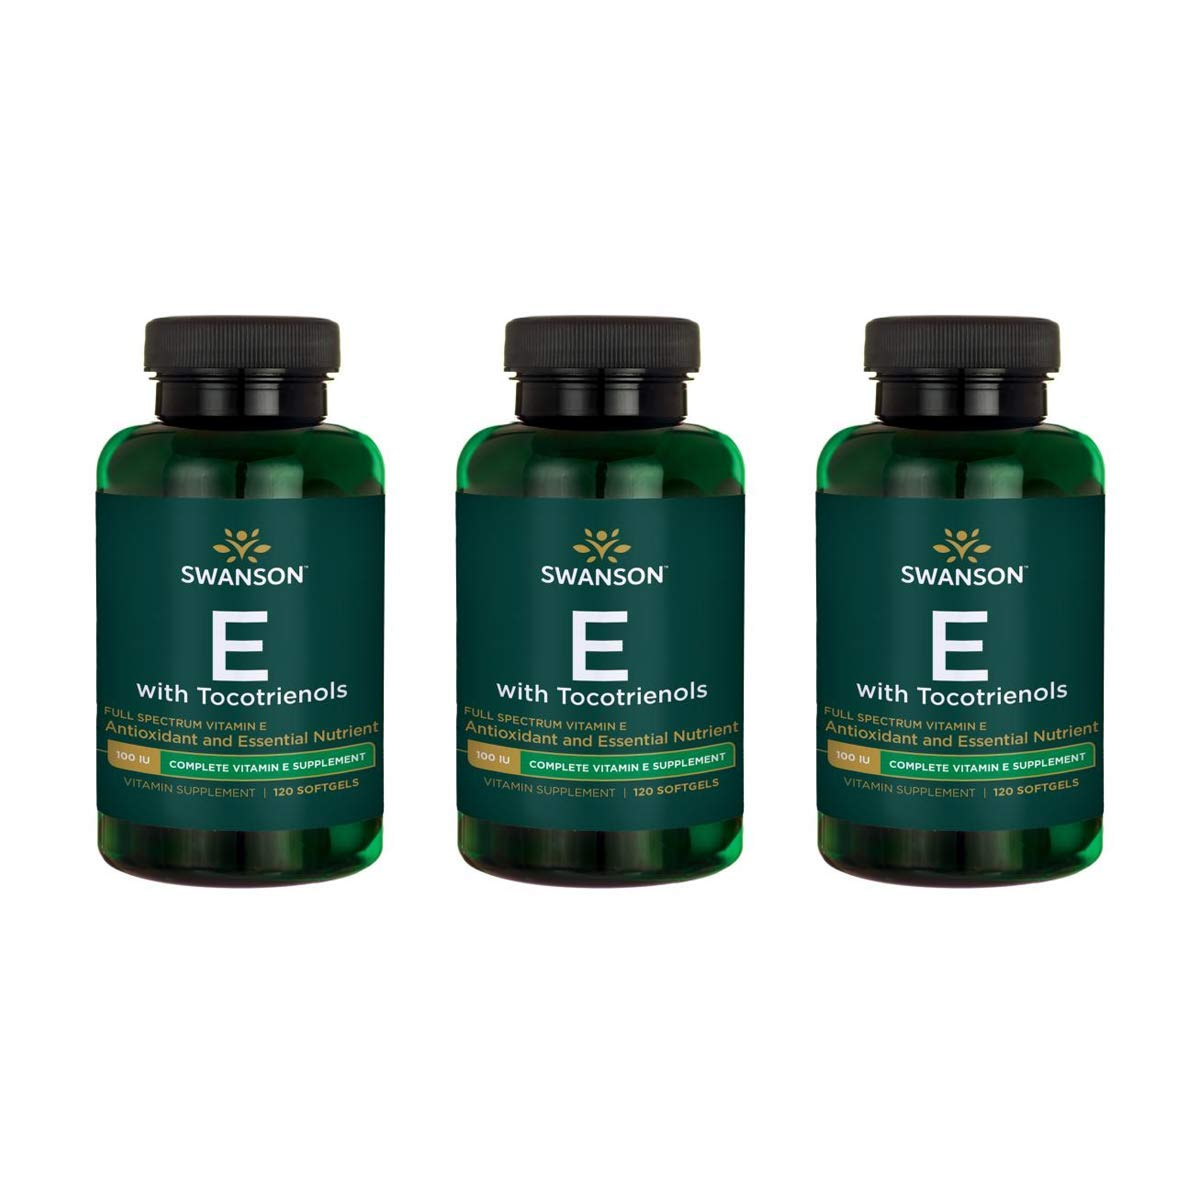 Swanson Vitamin E with Tocotrienols - Full Spectrum 120 Sgels 3 Pack